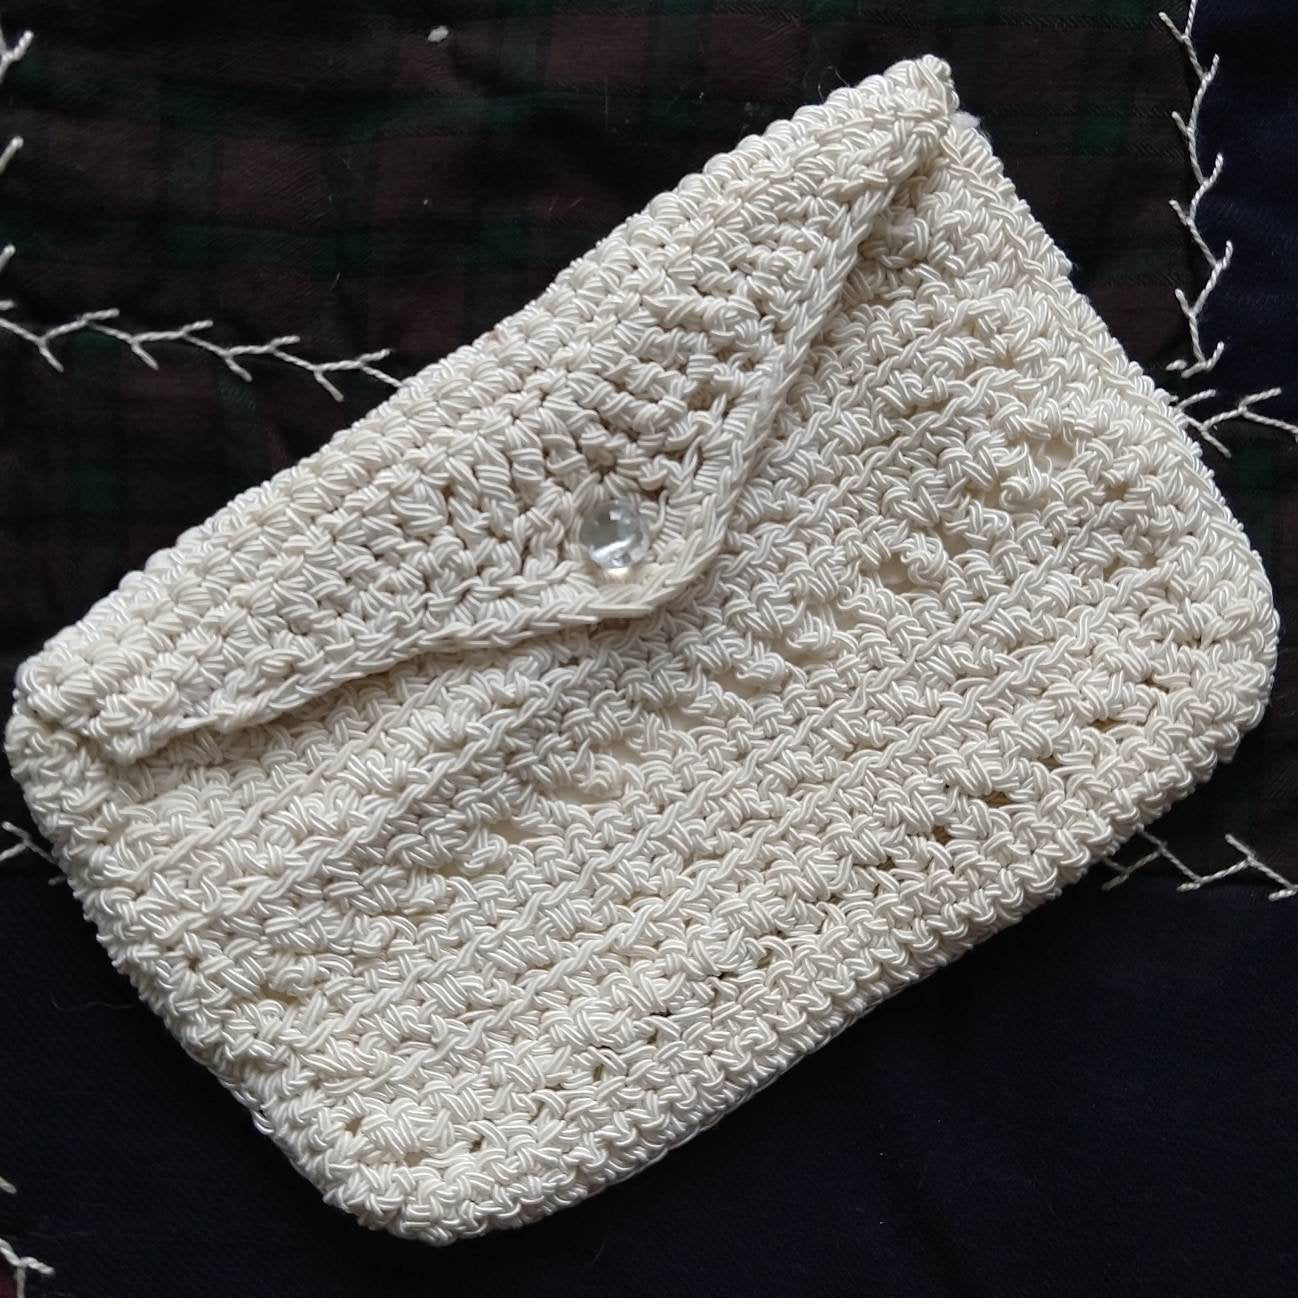 1930s 1940s IVORY SOUTACHE knit CLUTCH purse pouch (G8)